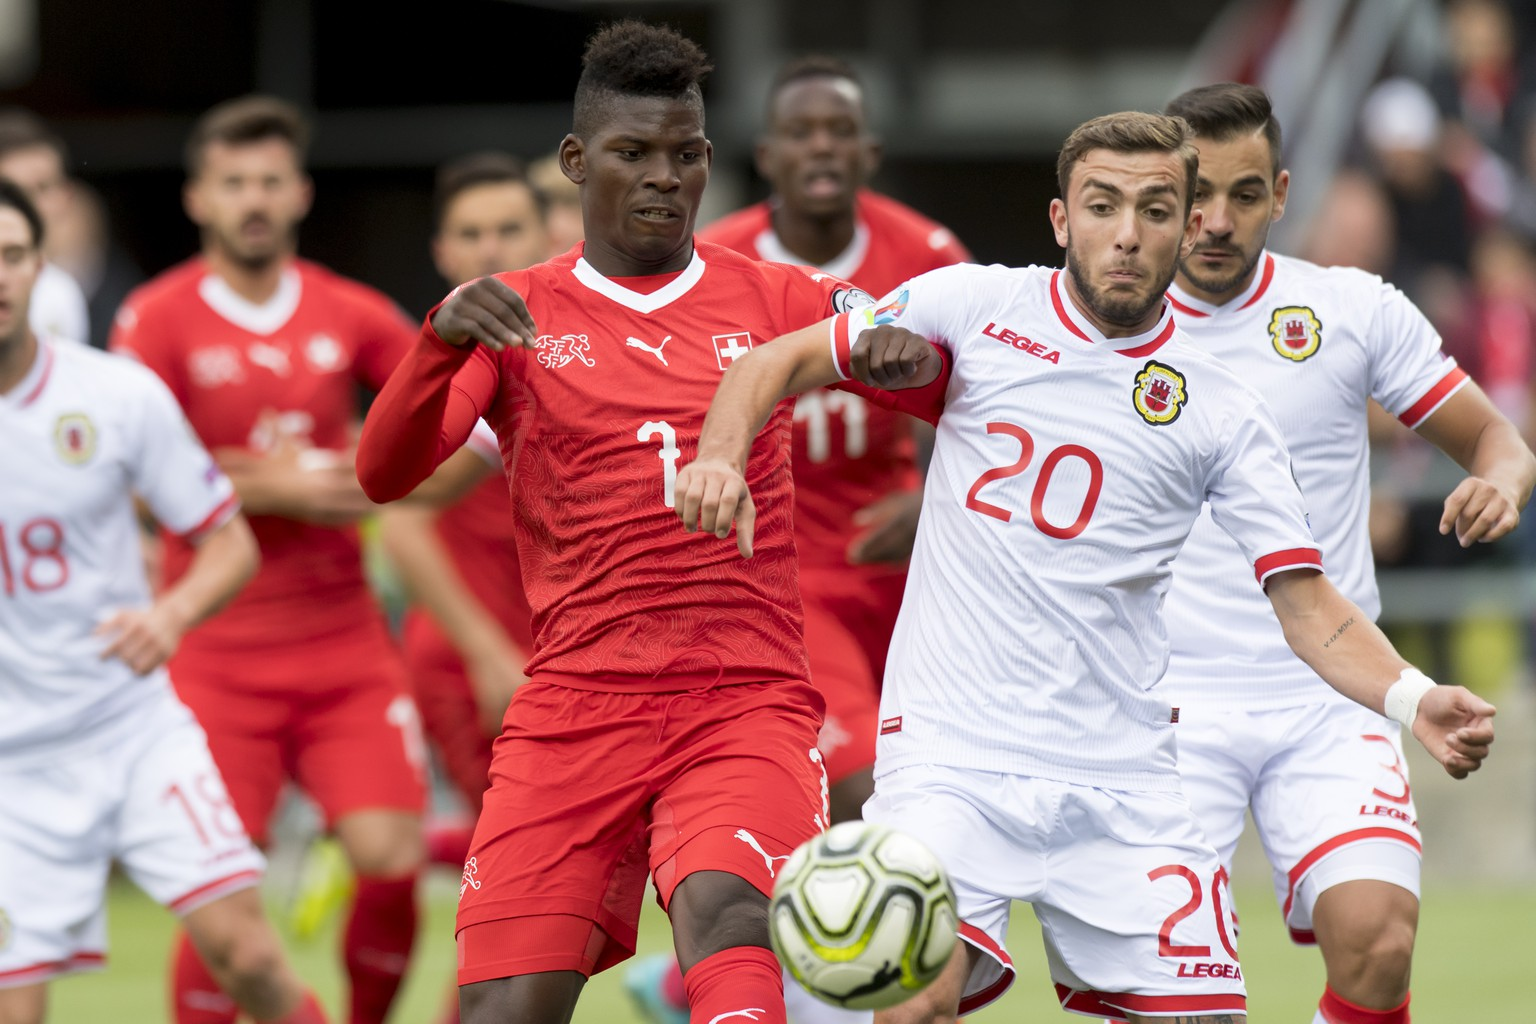 Switzerland's forward Breel Embolo, left, fights for the ball with Gibraltar's midfielder Ethan Britto, right, during the UEFA Euro 2020 qualifying Group D soccer match between the Switzerland and Gibraltar, at the Tourbillon Stadium in Sion, Switzerland, Sunday, September 8, 2019. (KEYSTONE/Laurent Gillieron)